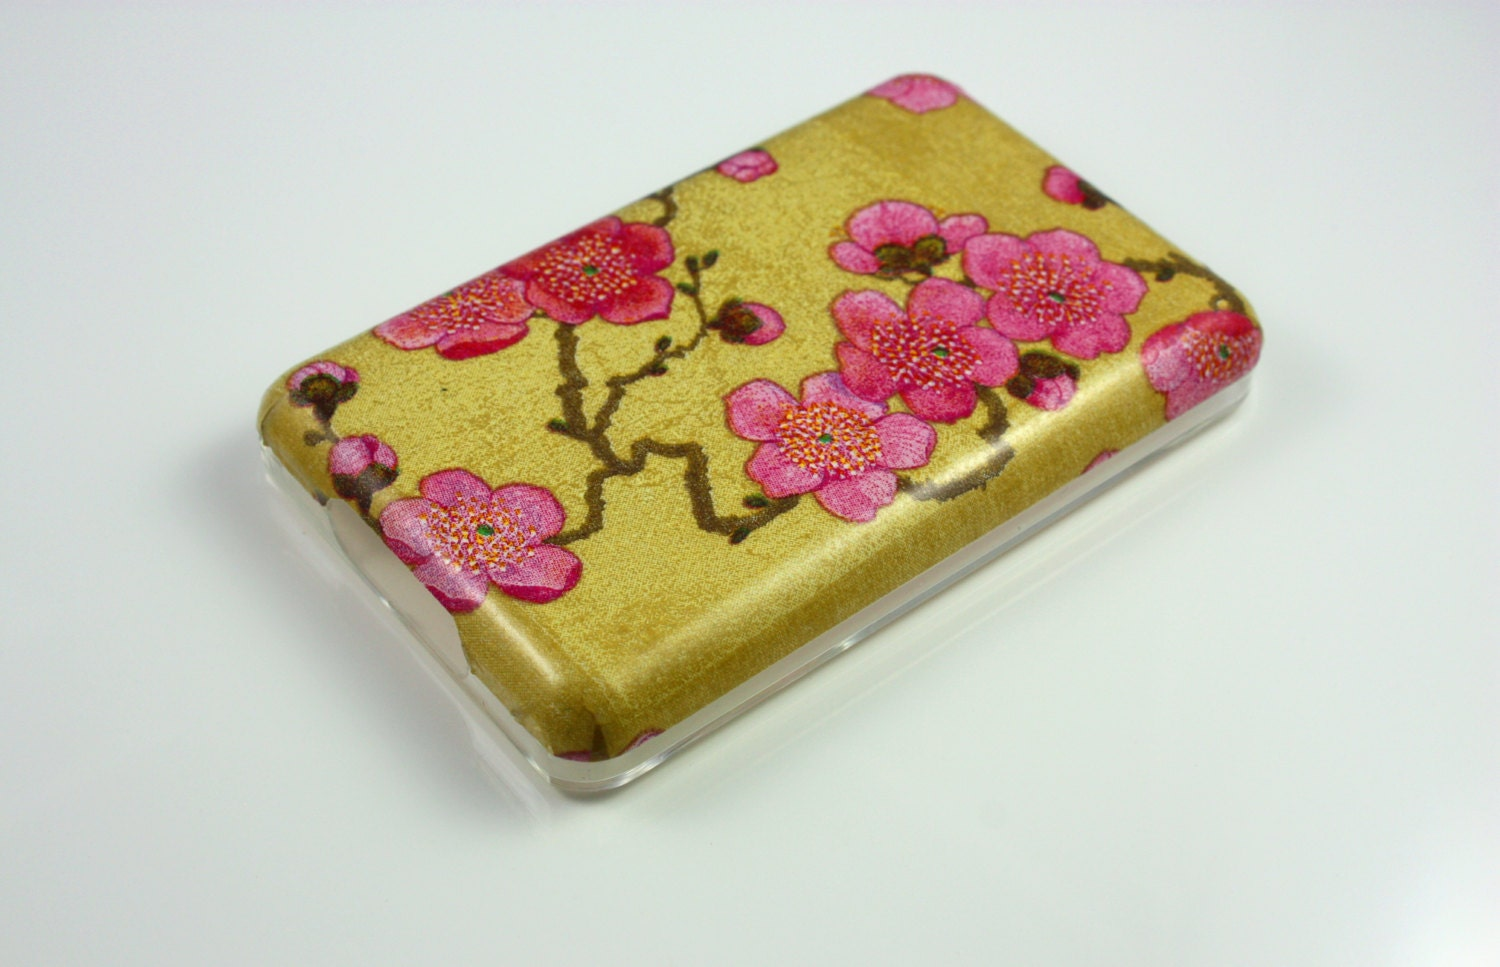 Golden Blossom iPod Classic Hard Cover Shell Case 80120160 GB 6th 7th generationiPod touch 5